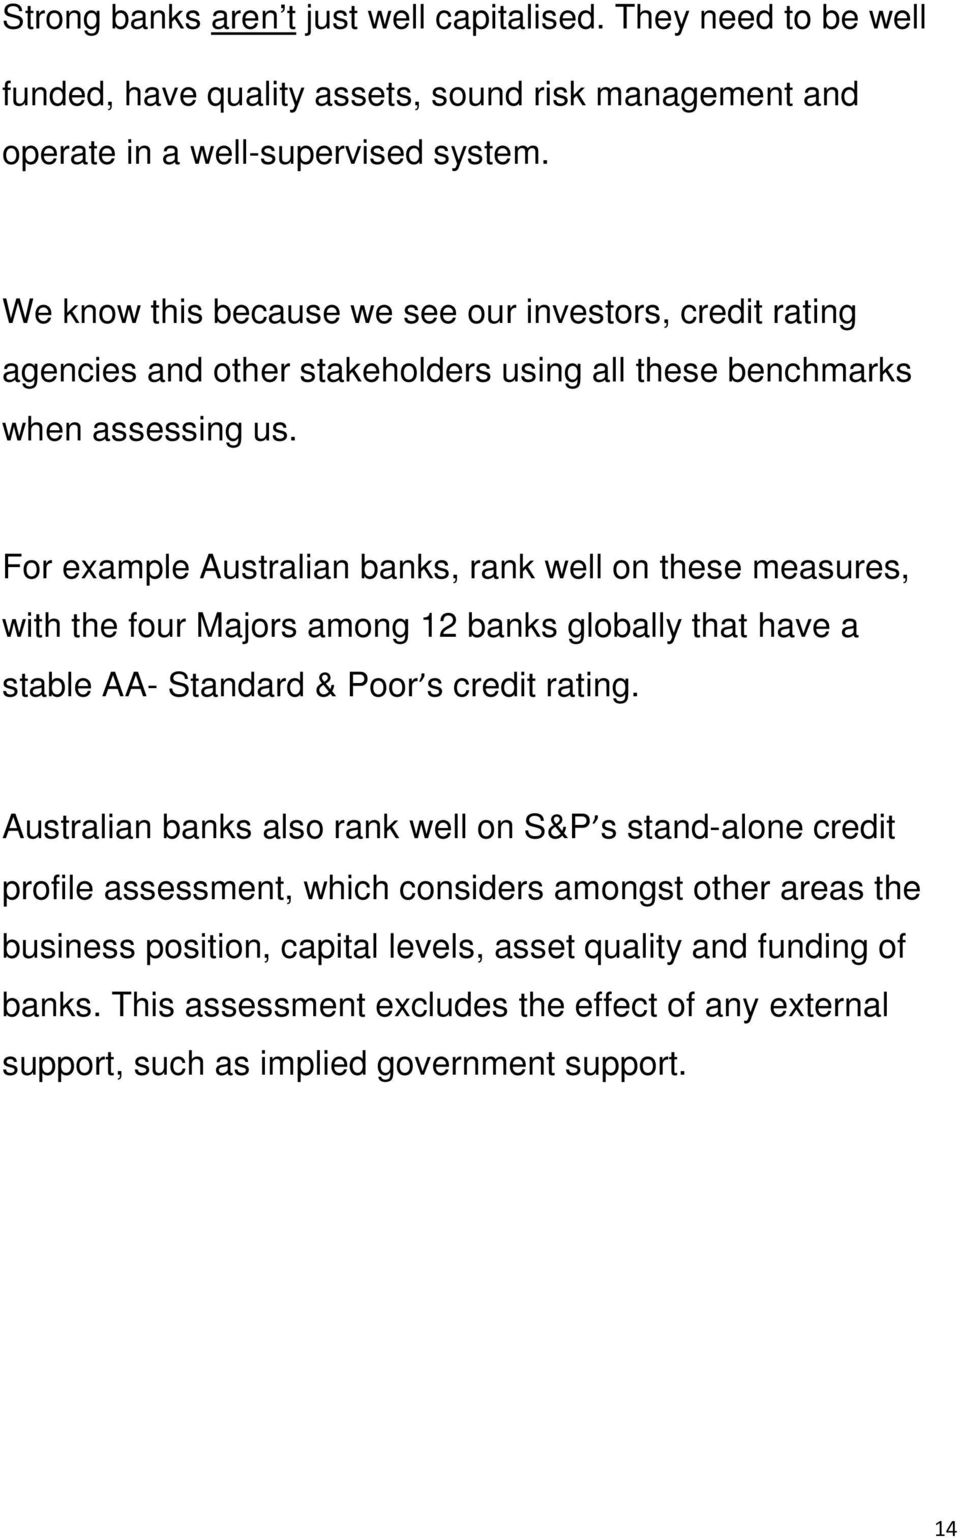 For example Australian banks, rank well on these measures, with the four Majors among 12 banks globally that have a stable AA- Standard & Poor s credit rating.